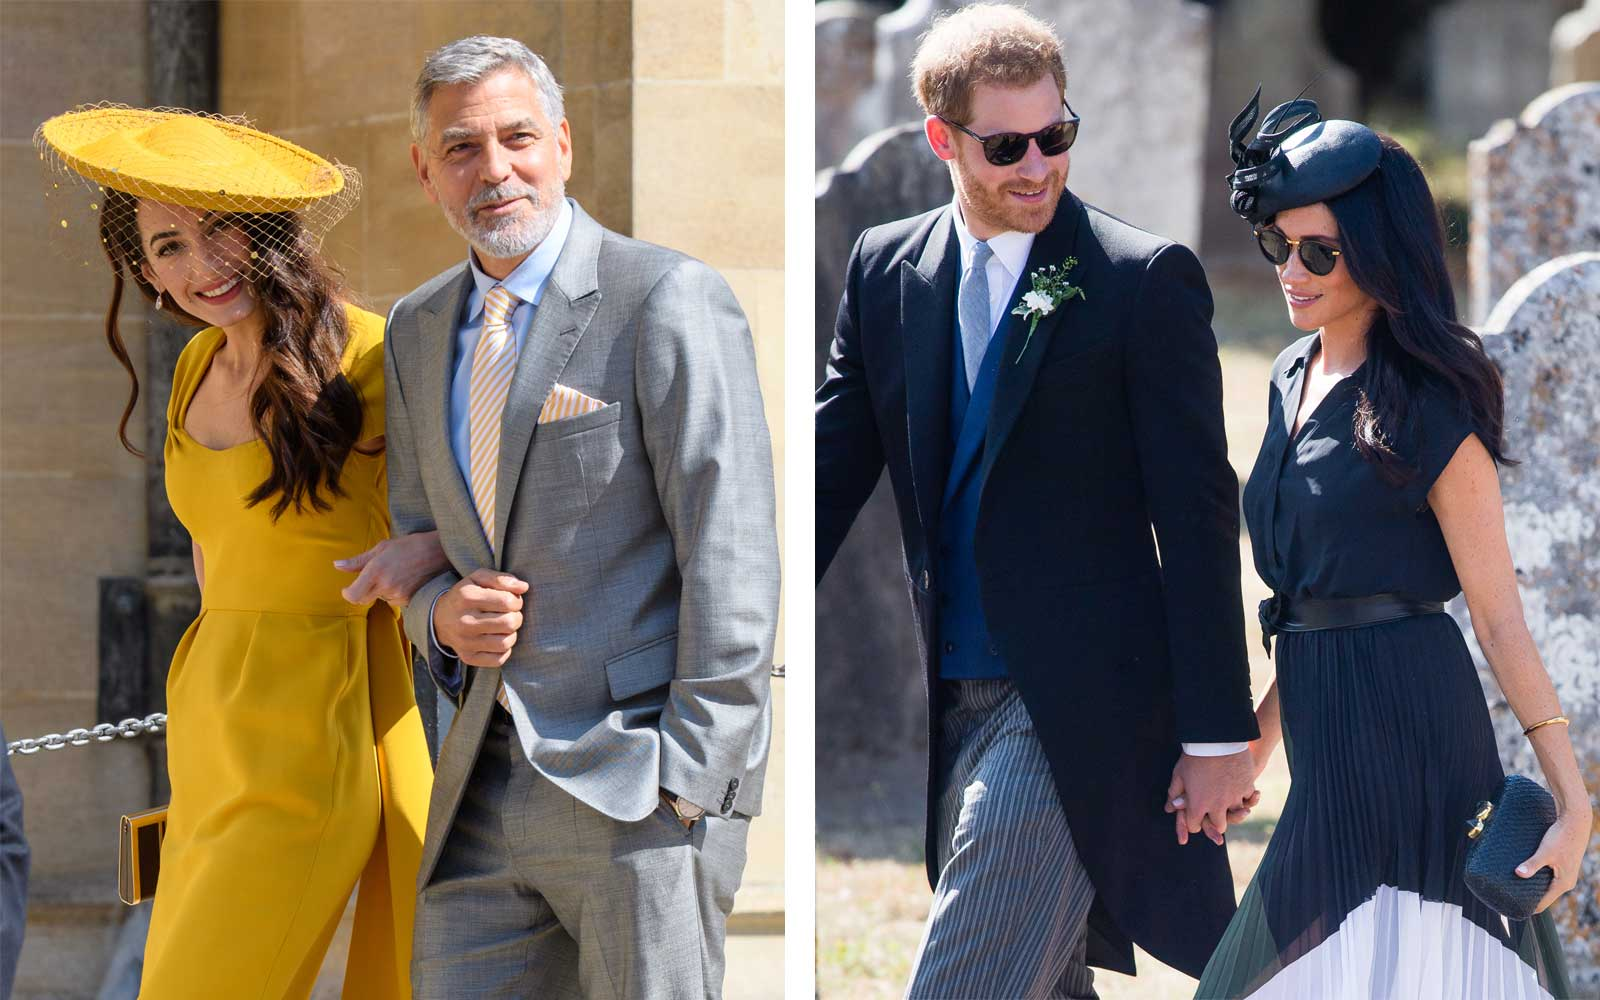 Prince Harry and Meghan Markle Took a Secret Vacation With George and Amal Clooney